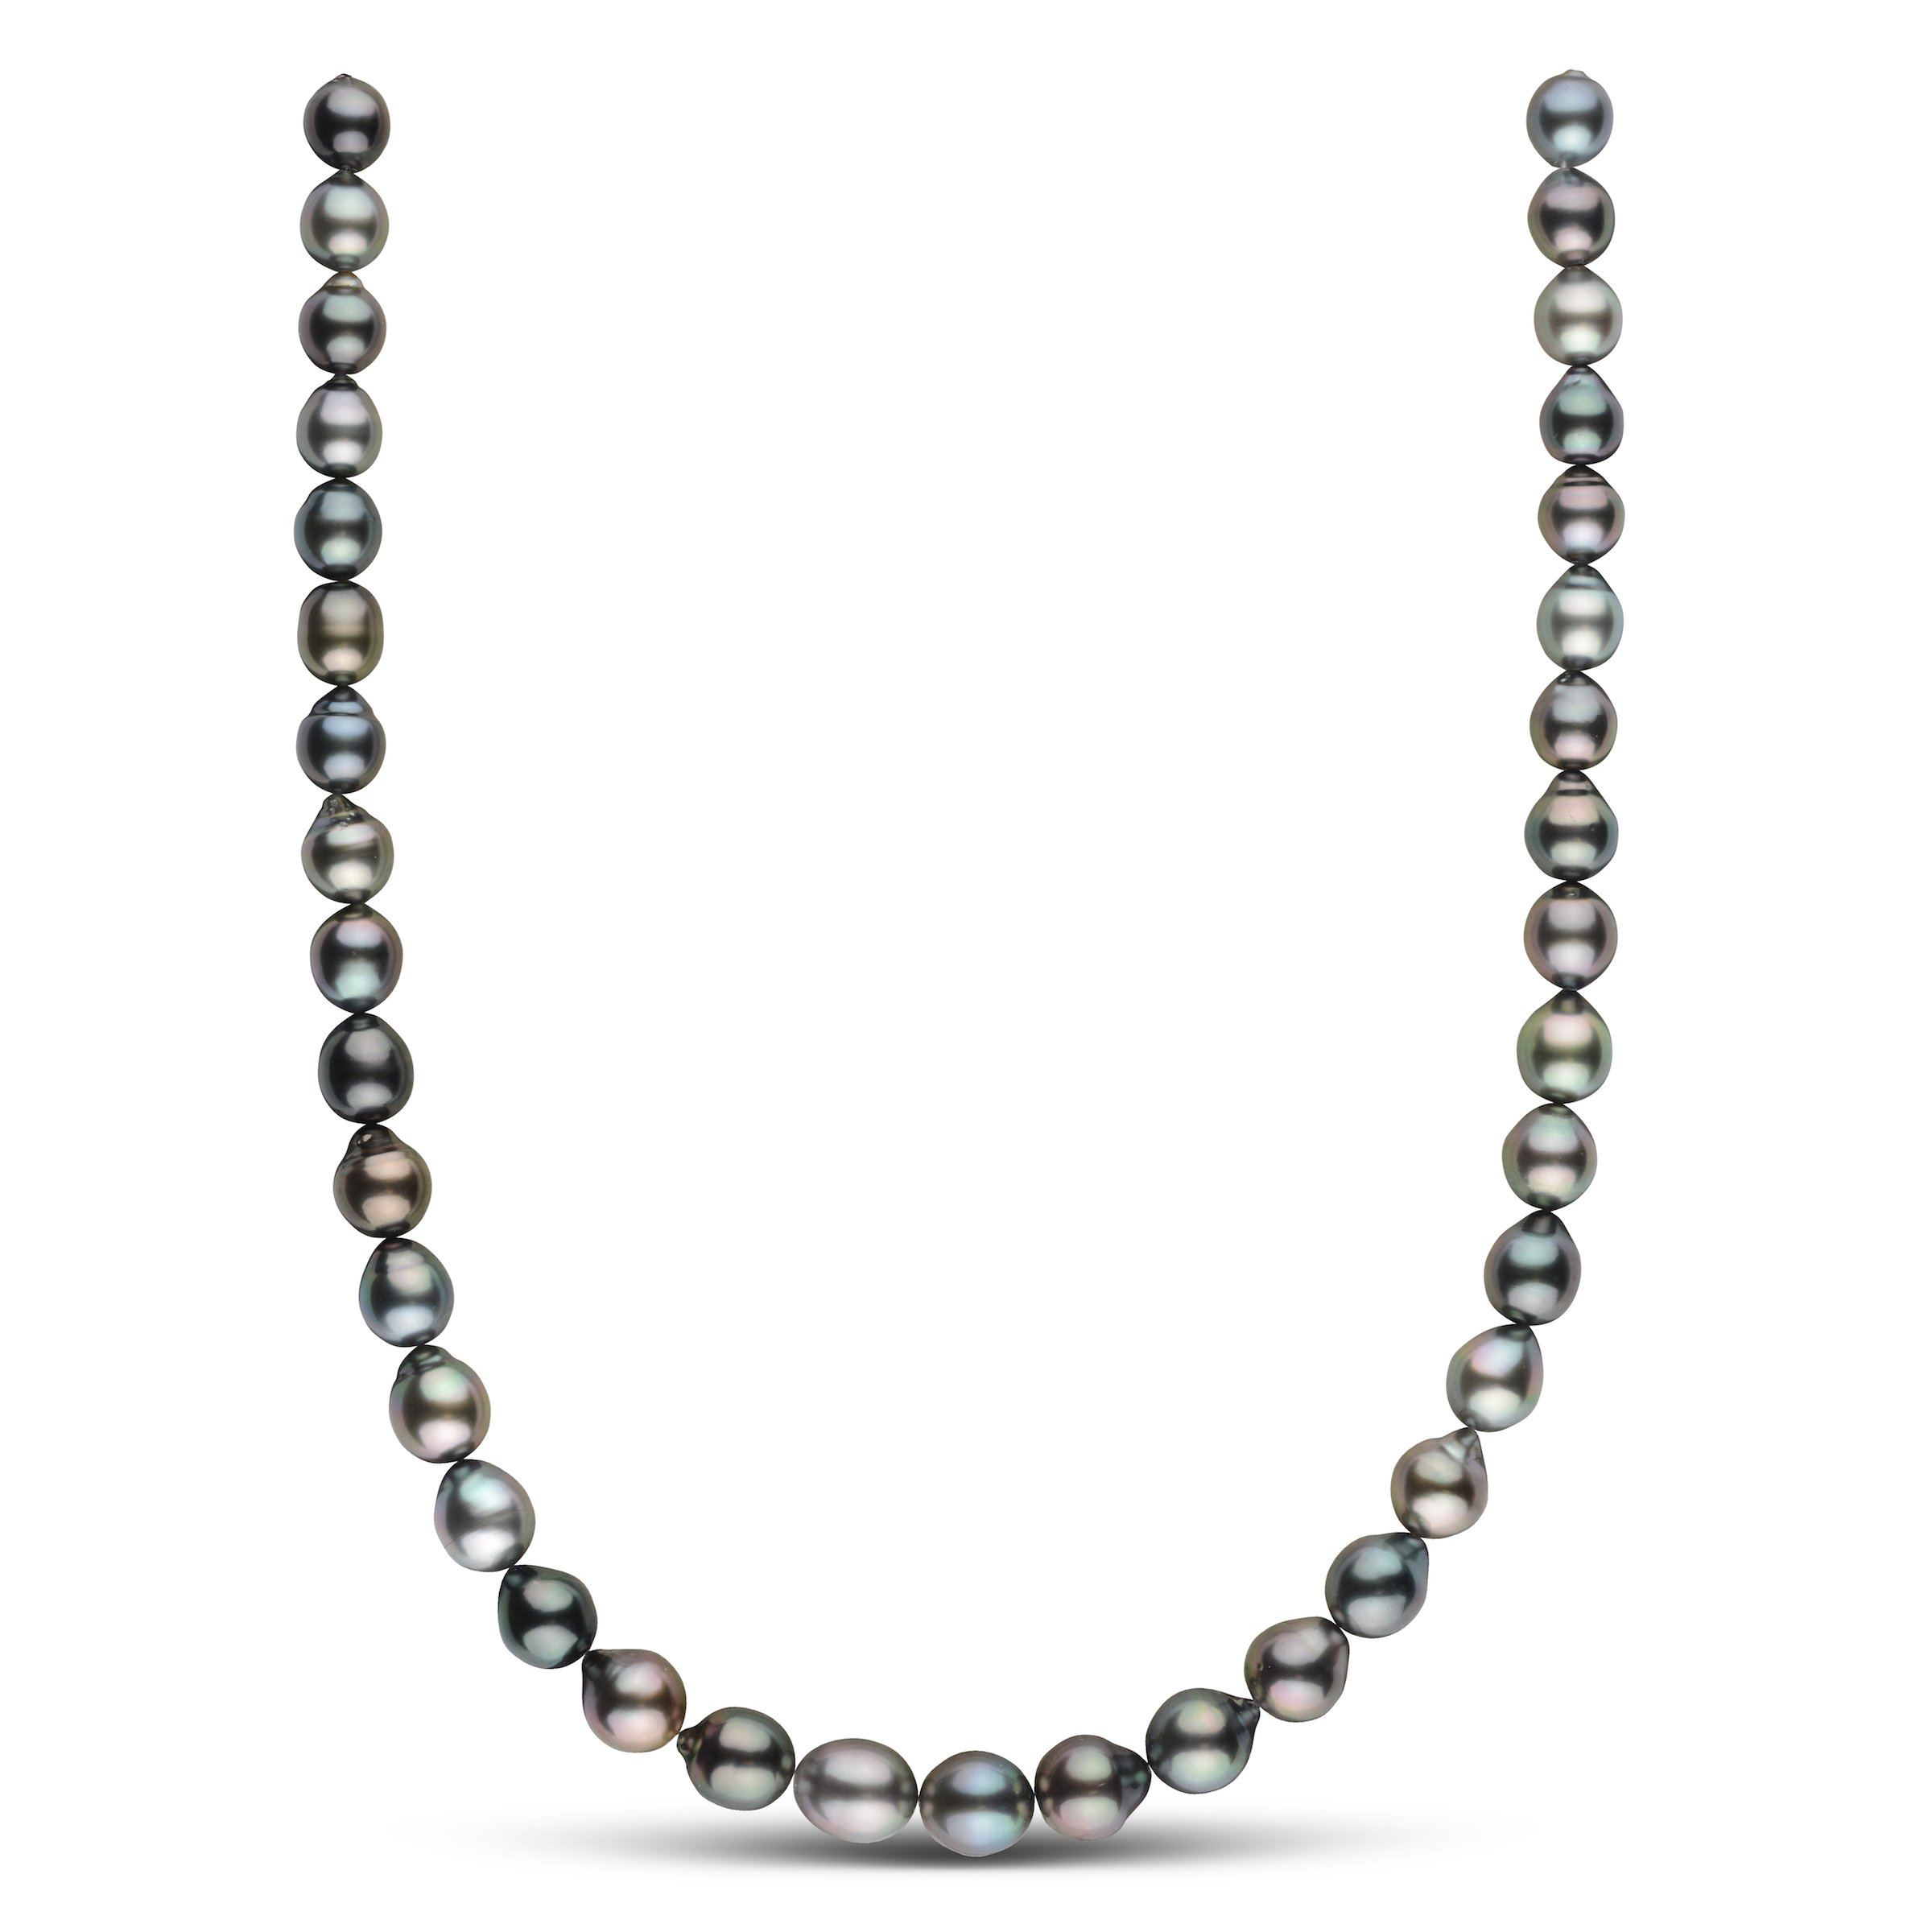 8.6-10.4 mm AAA Tahitian Drop Pearl Necklace